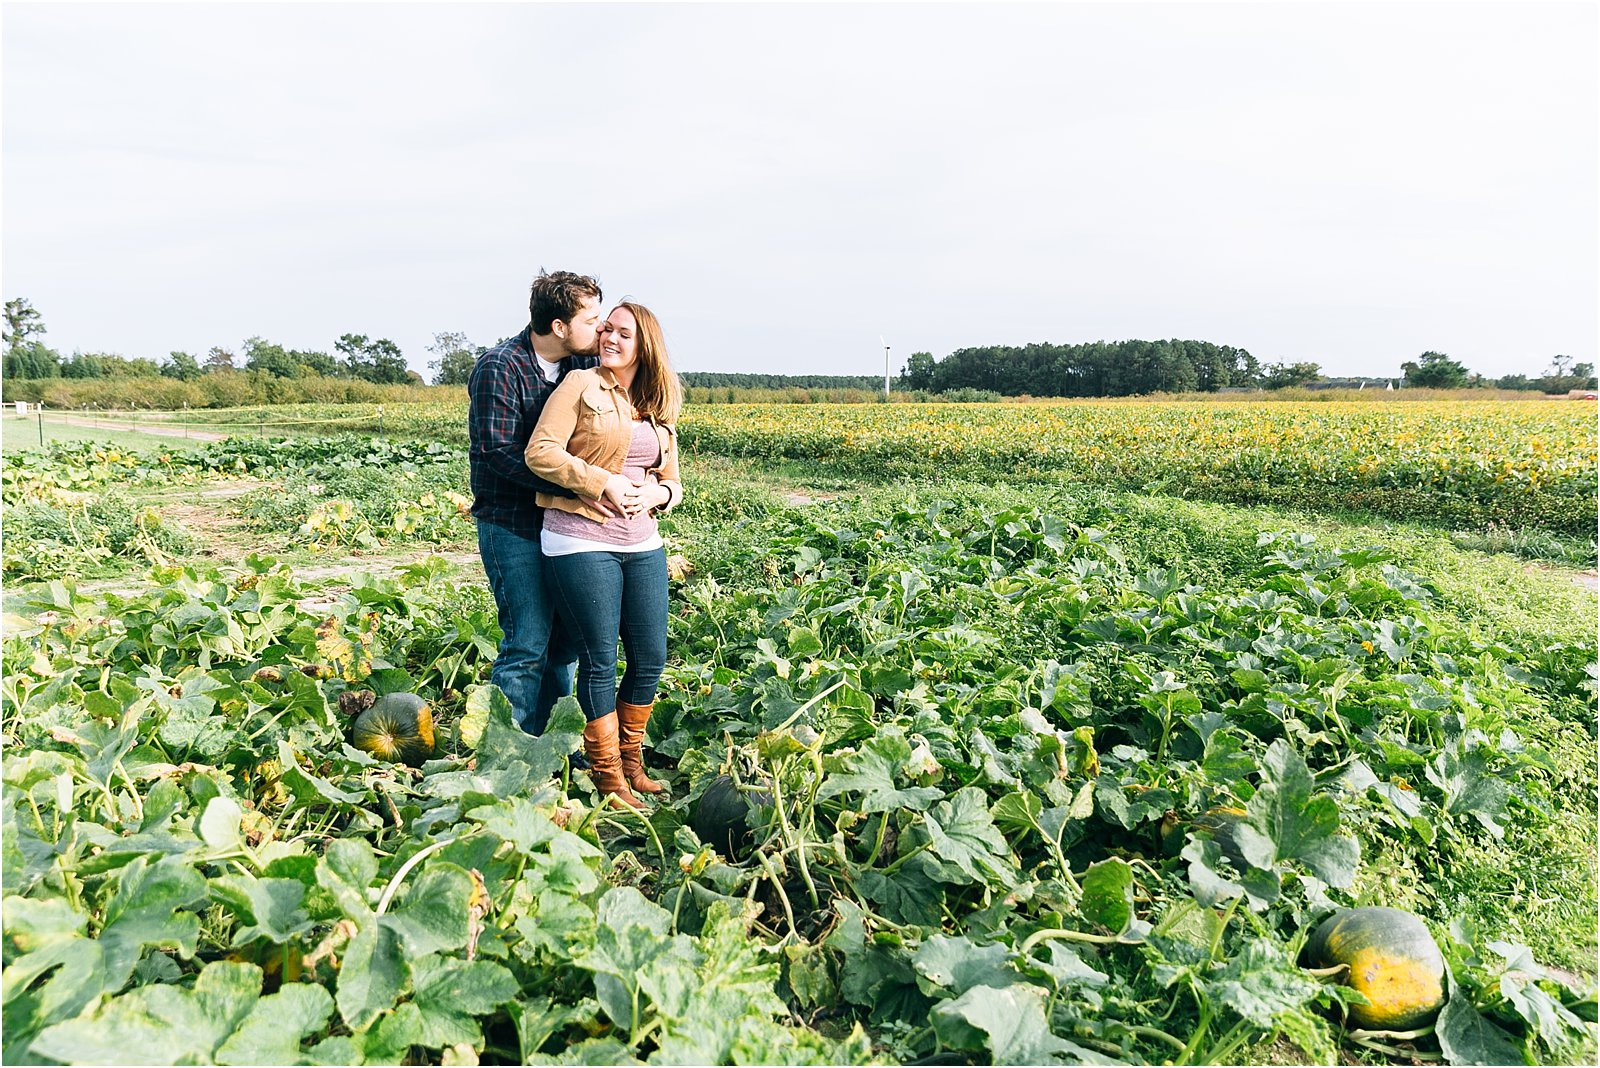 jessica_ryan_photography_pumpkin_patch_engagement_portraits_fall_october_engagements_virginia_beach_chesapeake_0275